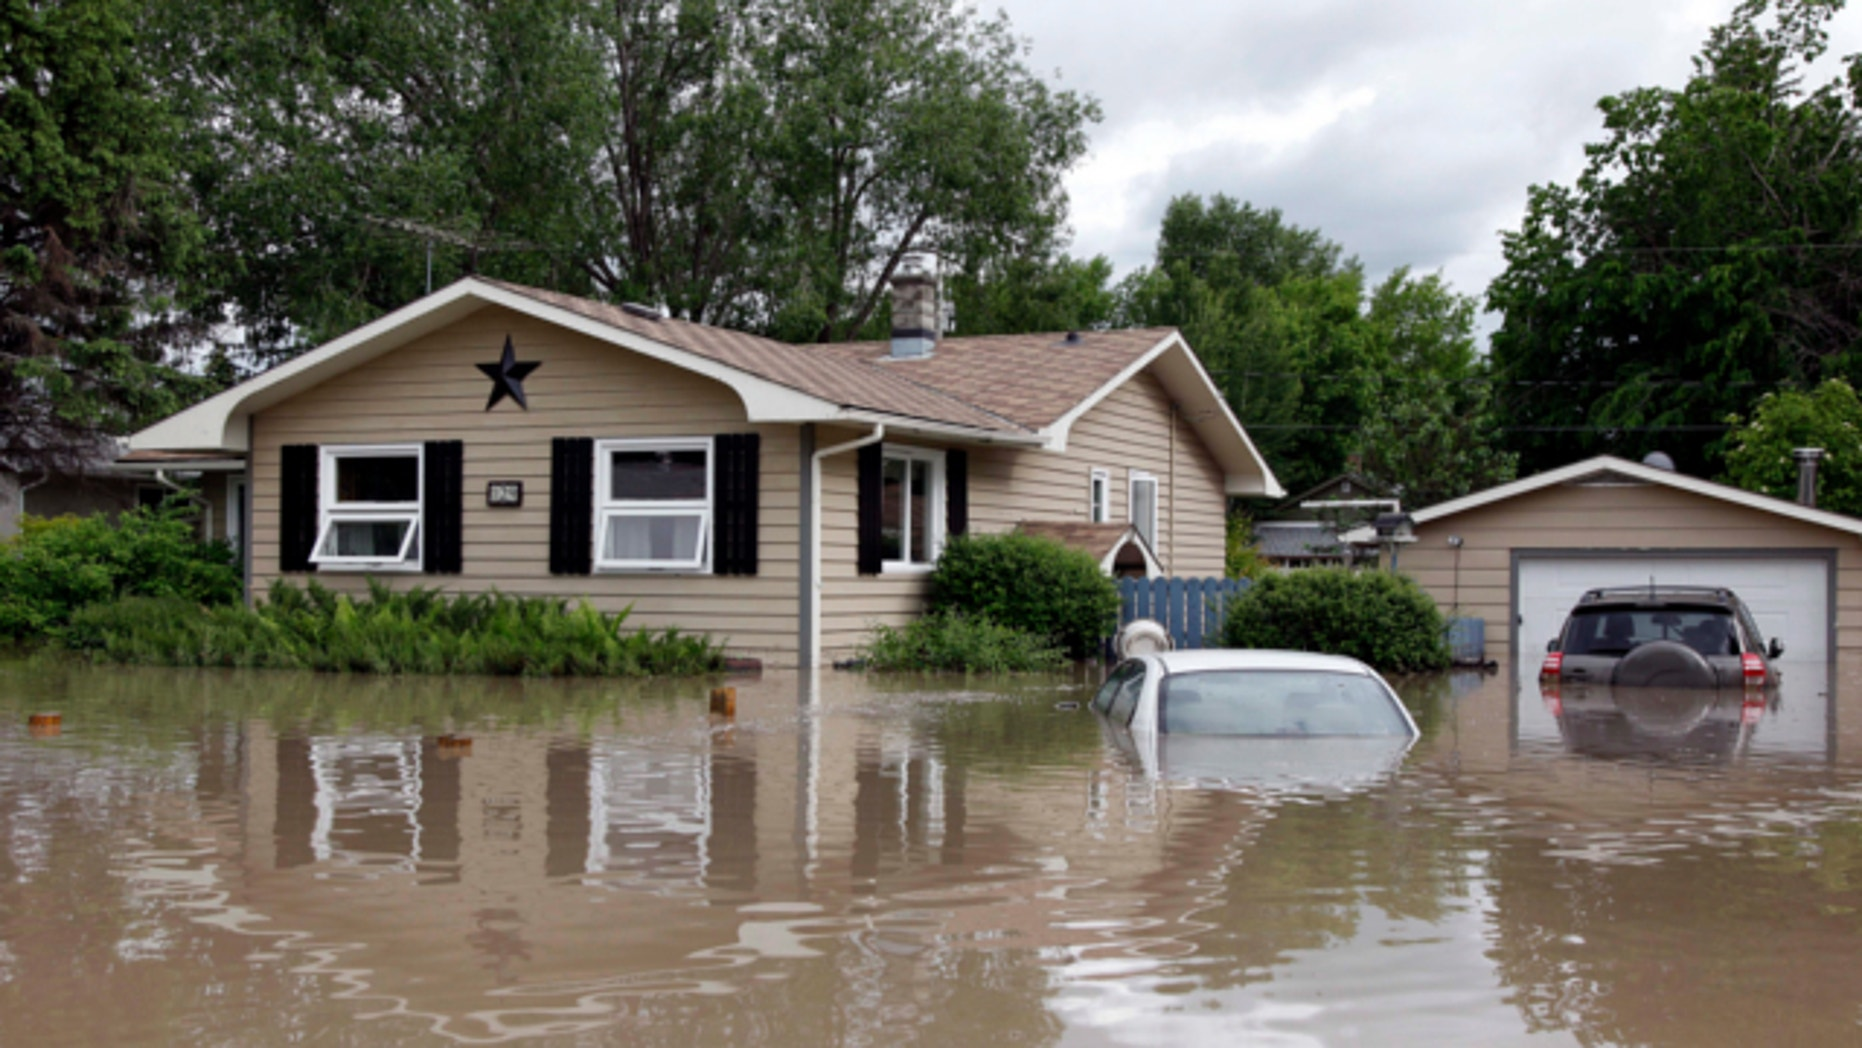 June 20, 2013: Cars and homes are submerged in flood waters in High River.